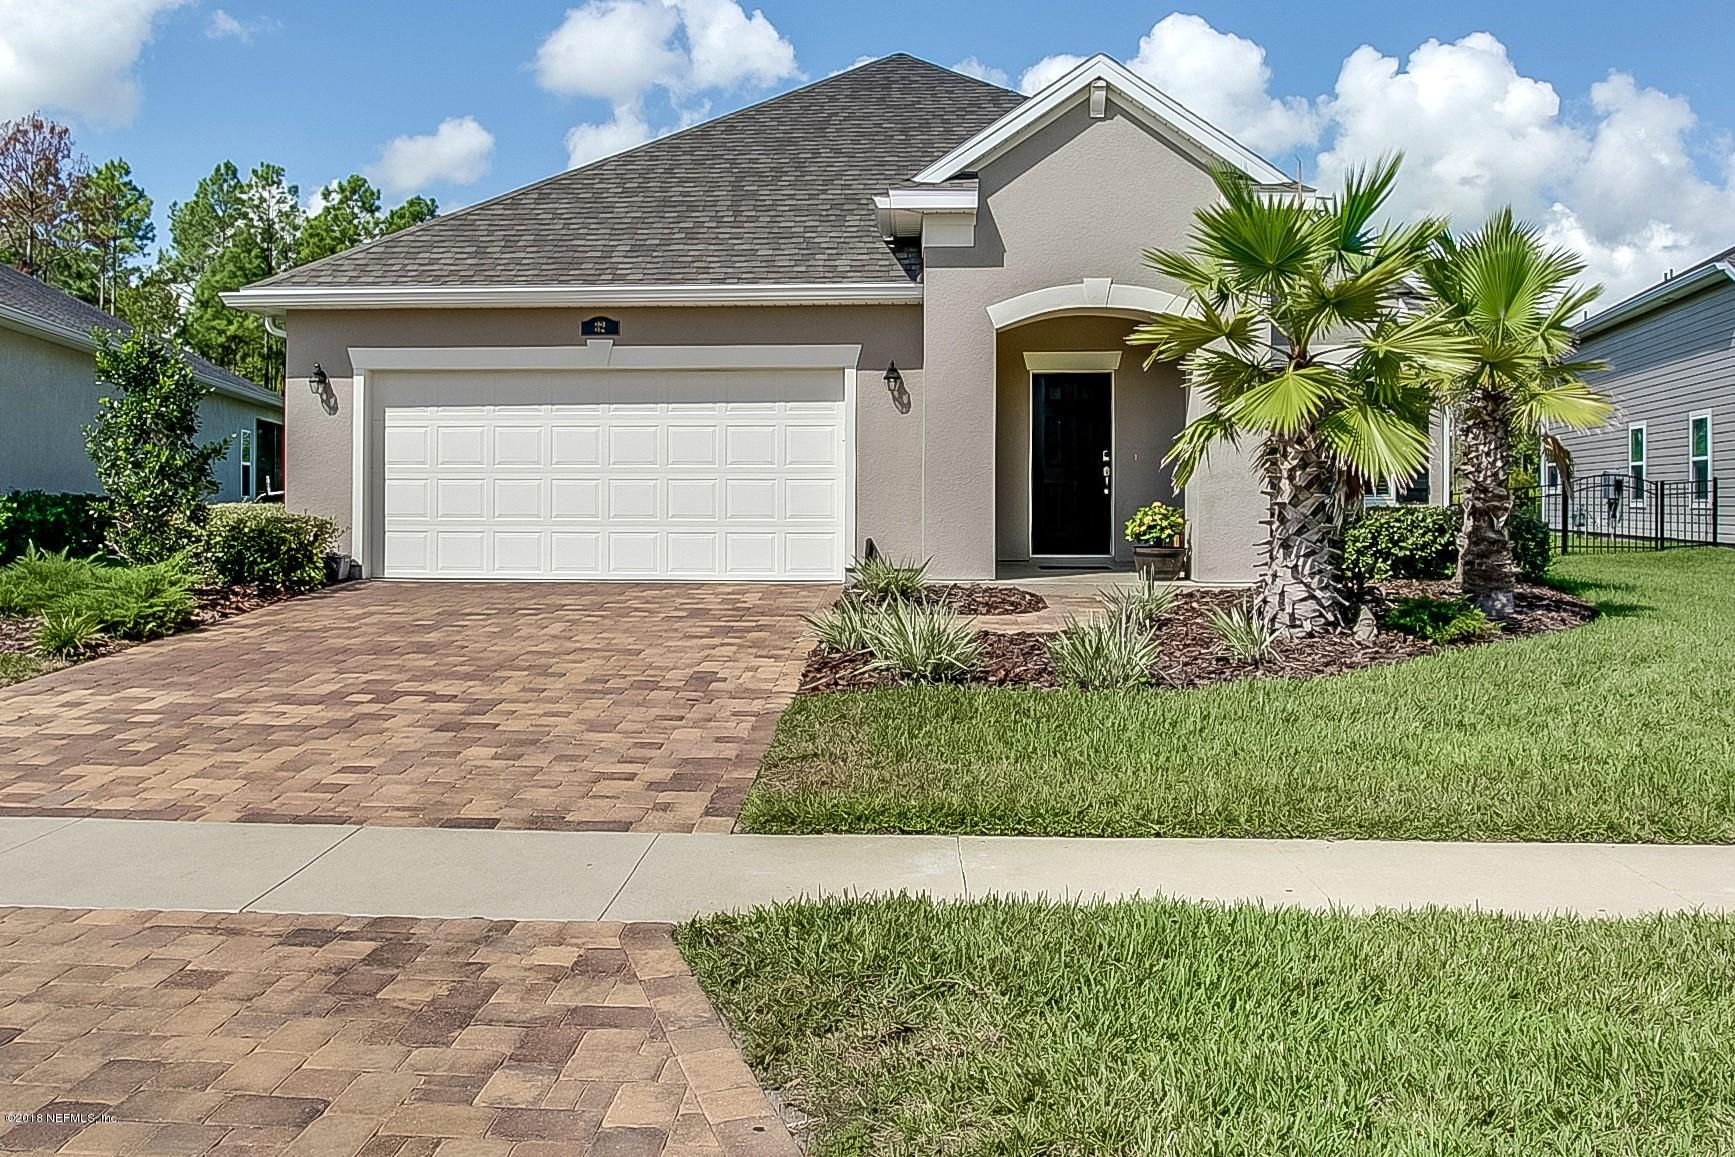 32 CEJA, ST AUGUSTINE, FLORIDA 32095, 4 Bedrooms Bedrooms, ,3 BathroomsBathrooms,Residential - single family,For sale,CEJA,961233